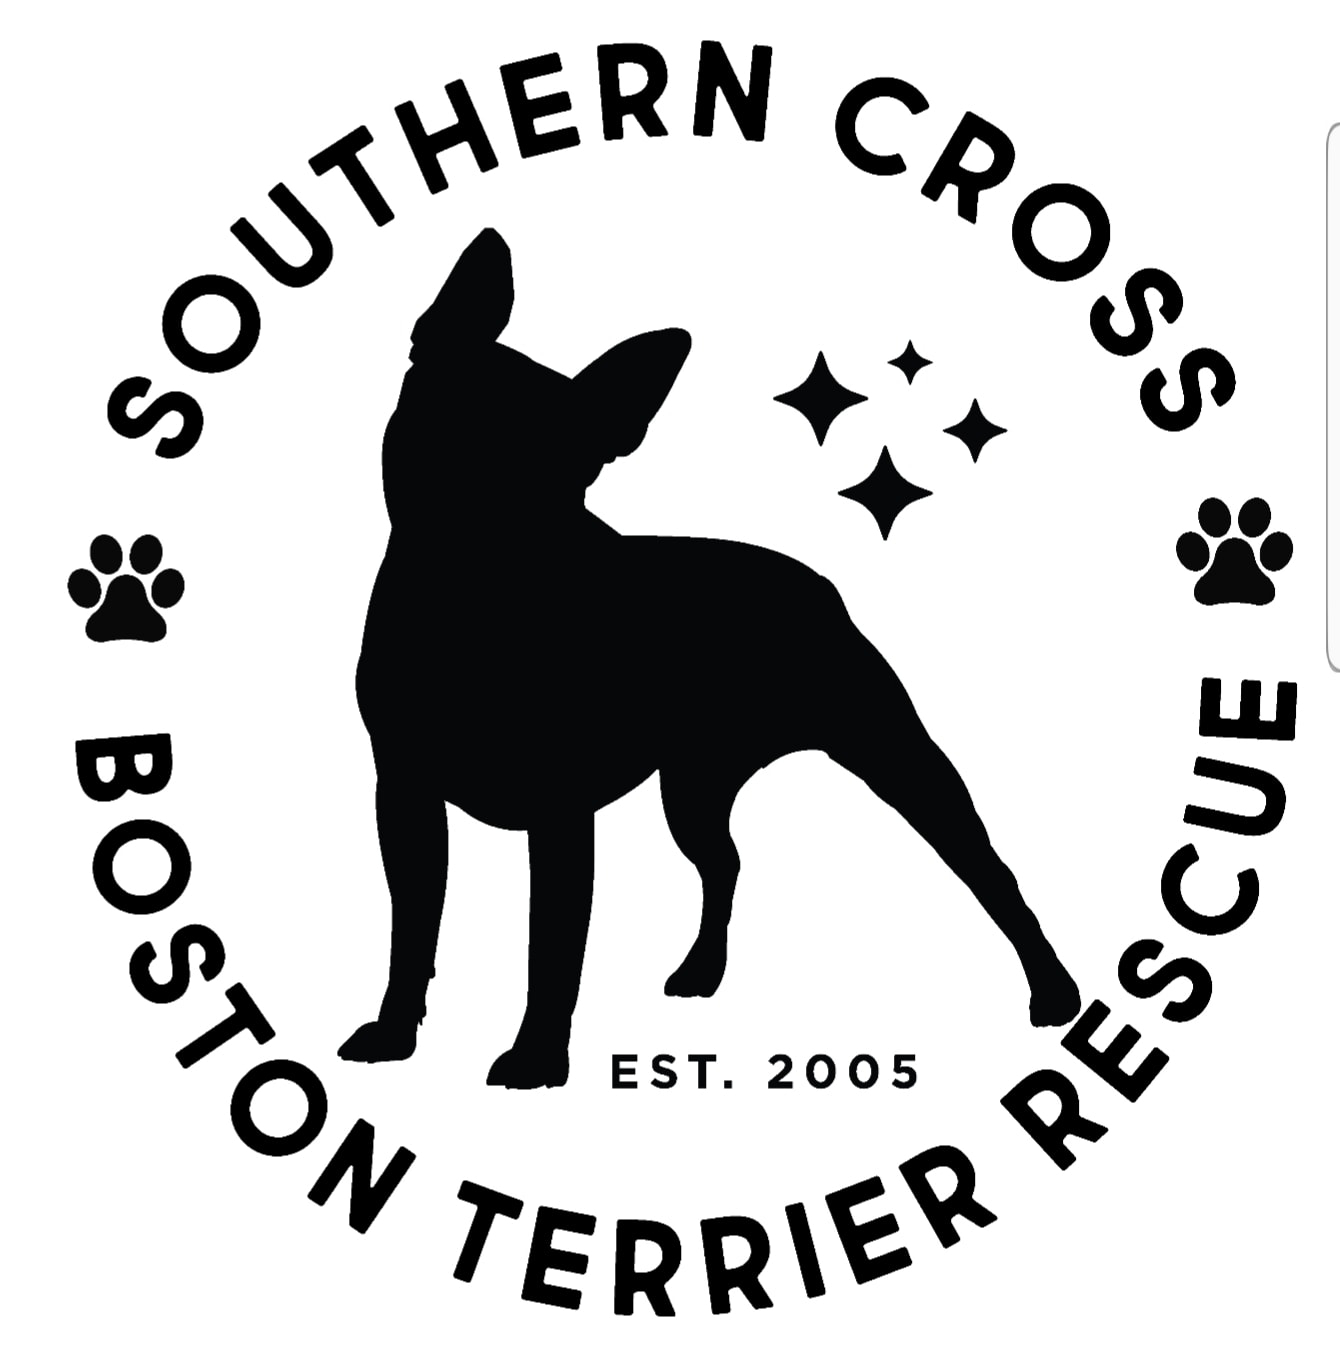 Southern Cross Boston Terrier Rescue